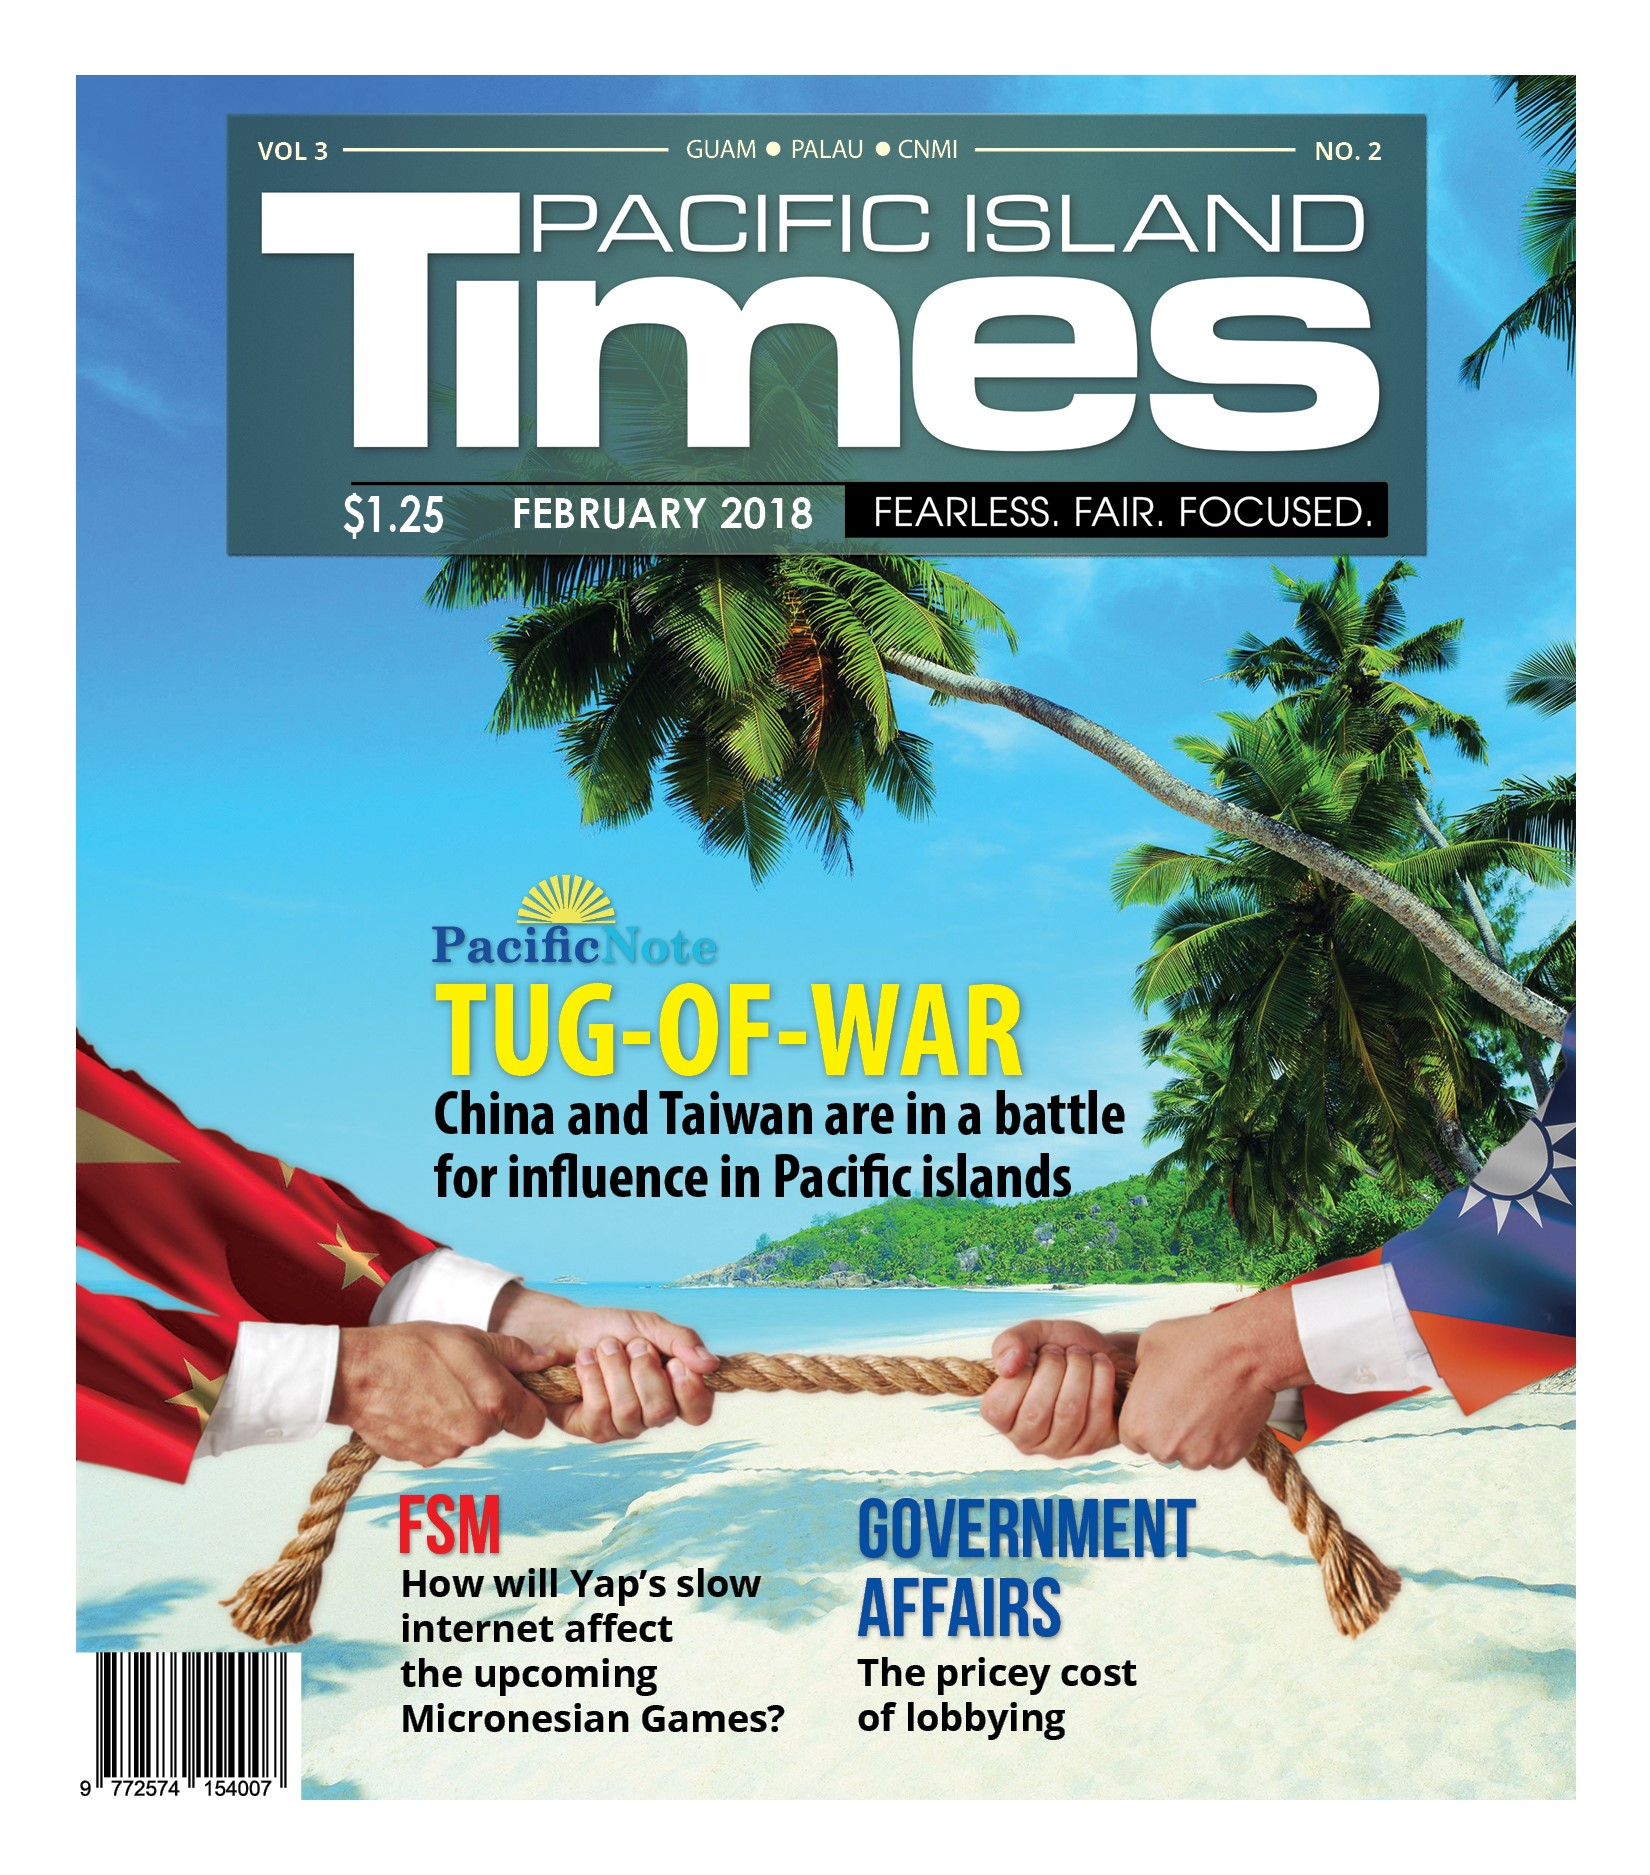 The two-China rivalry over the Pacific islands